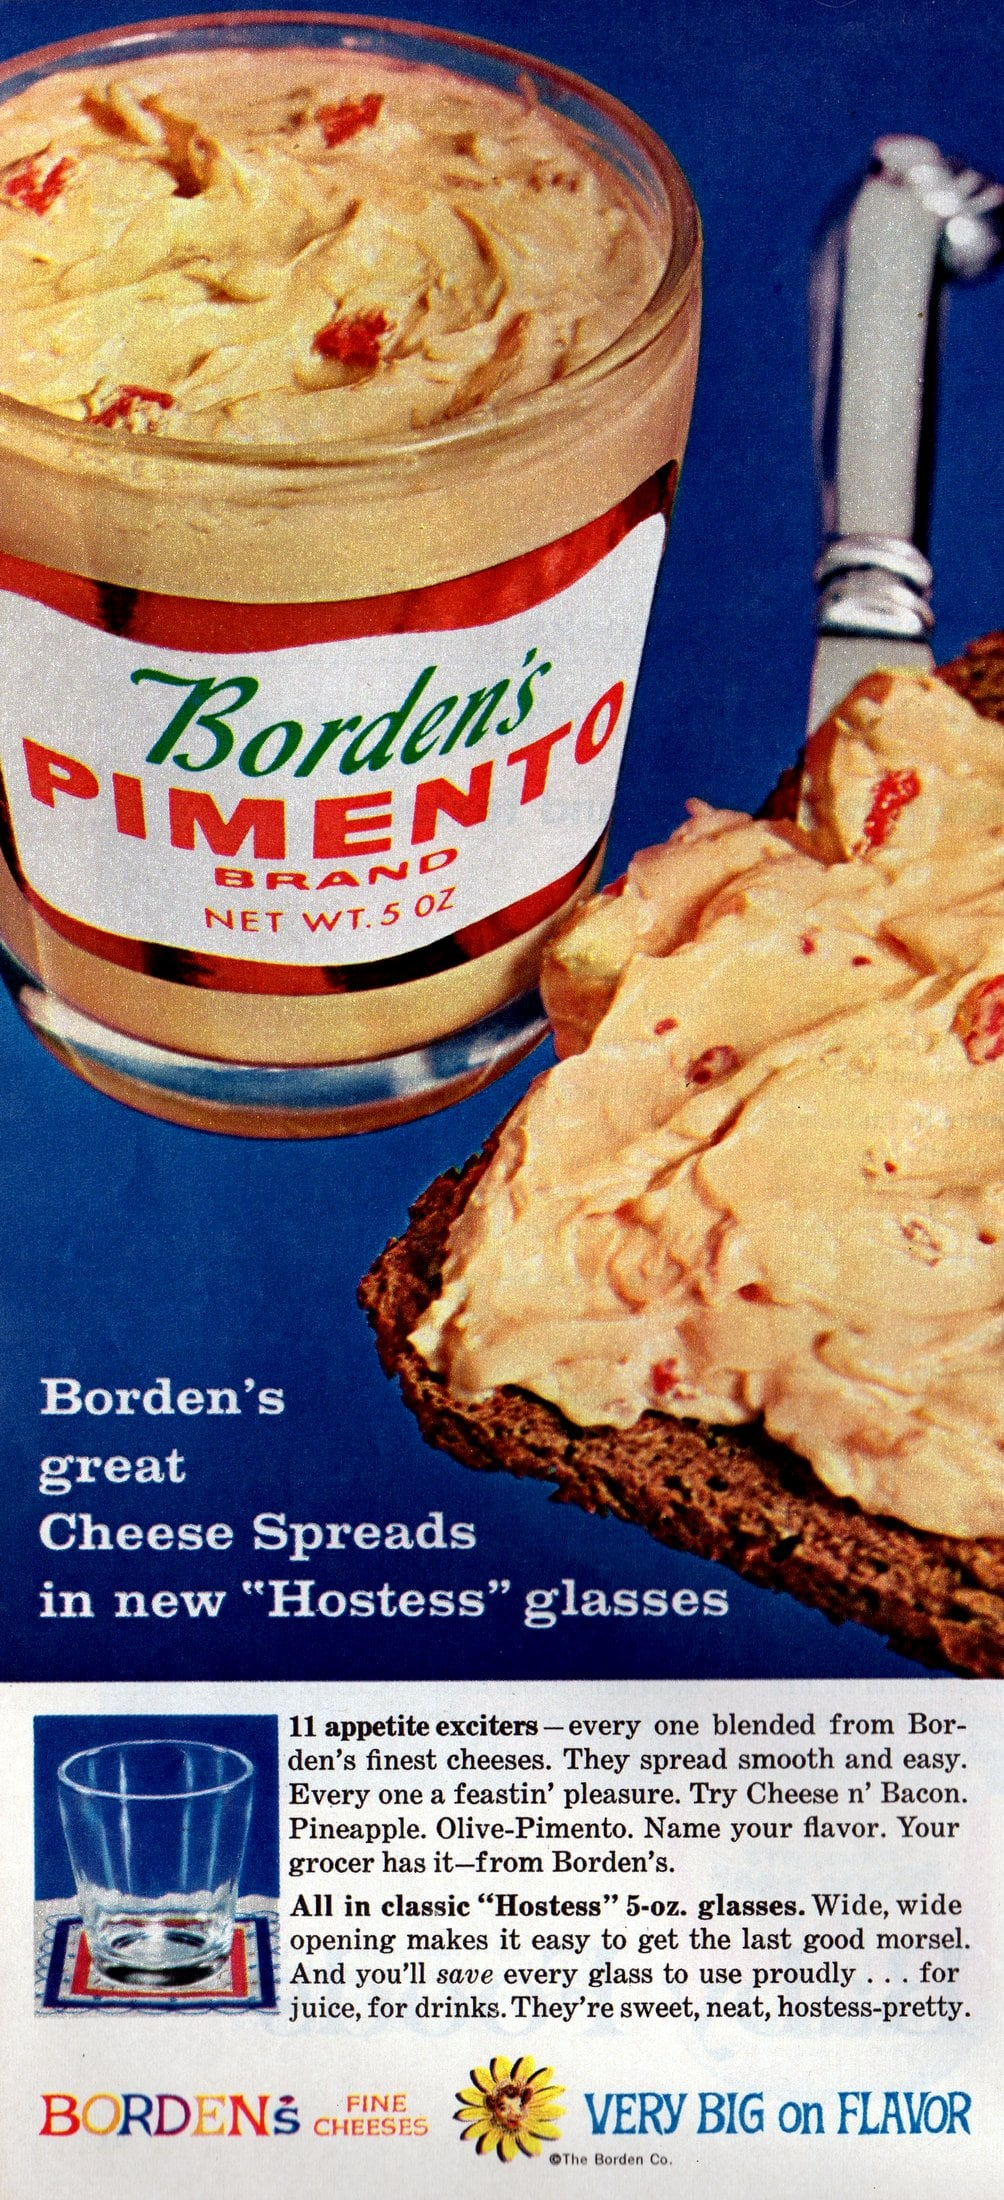 Borden's 1960s cheese spreads came in hostess glasses (1962)